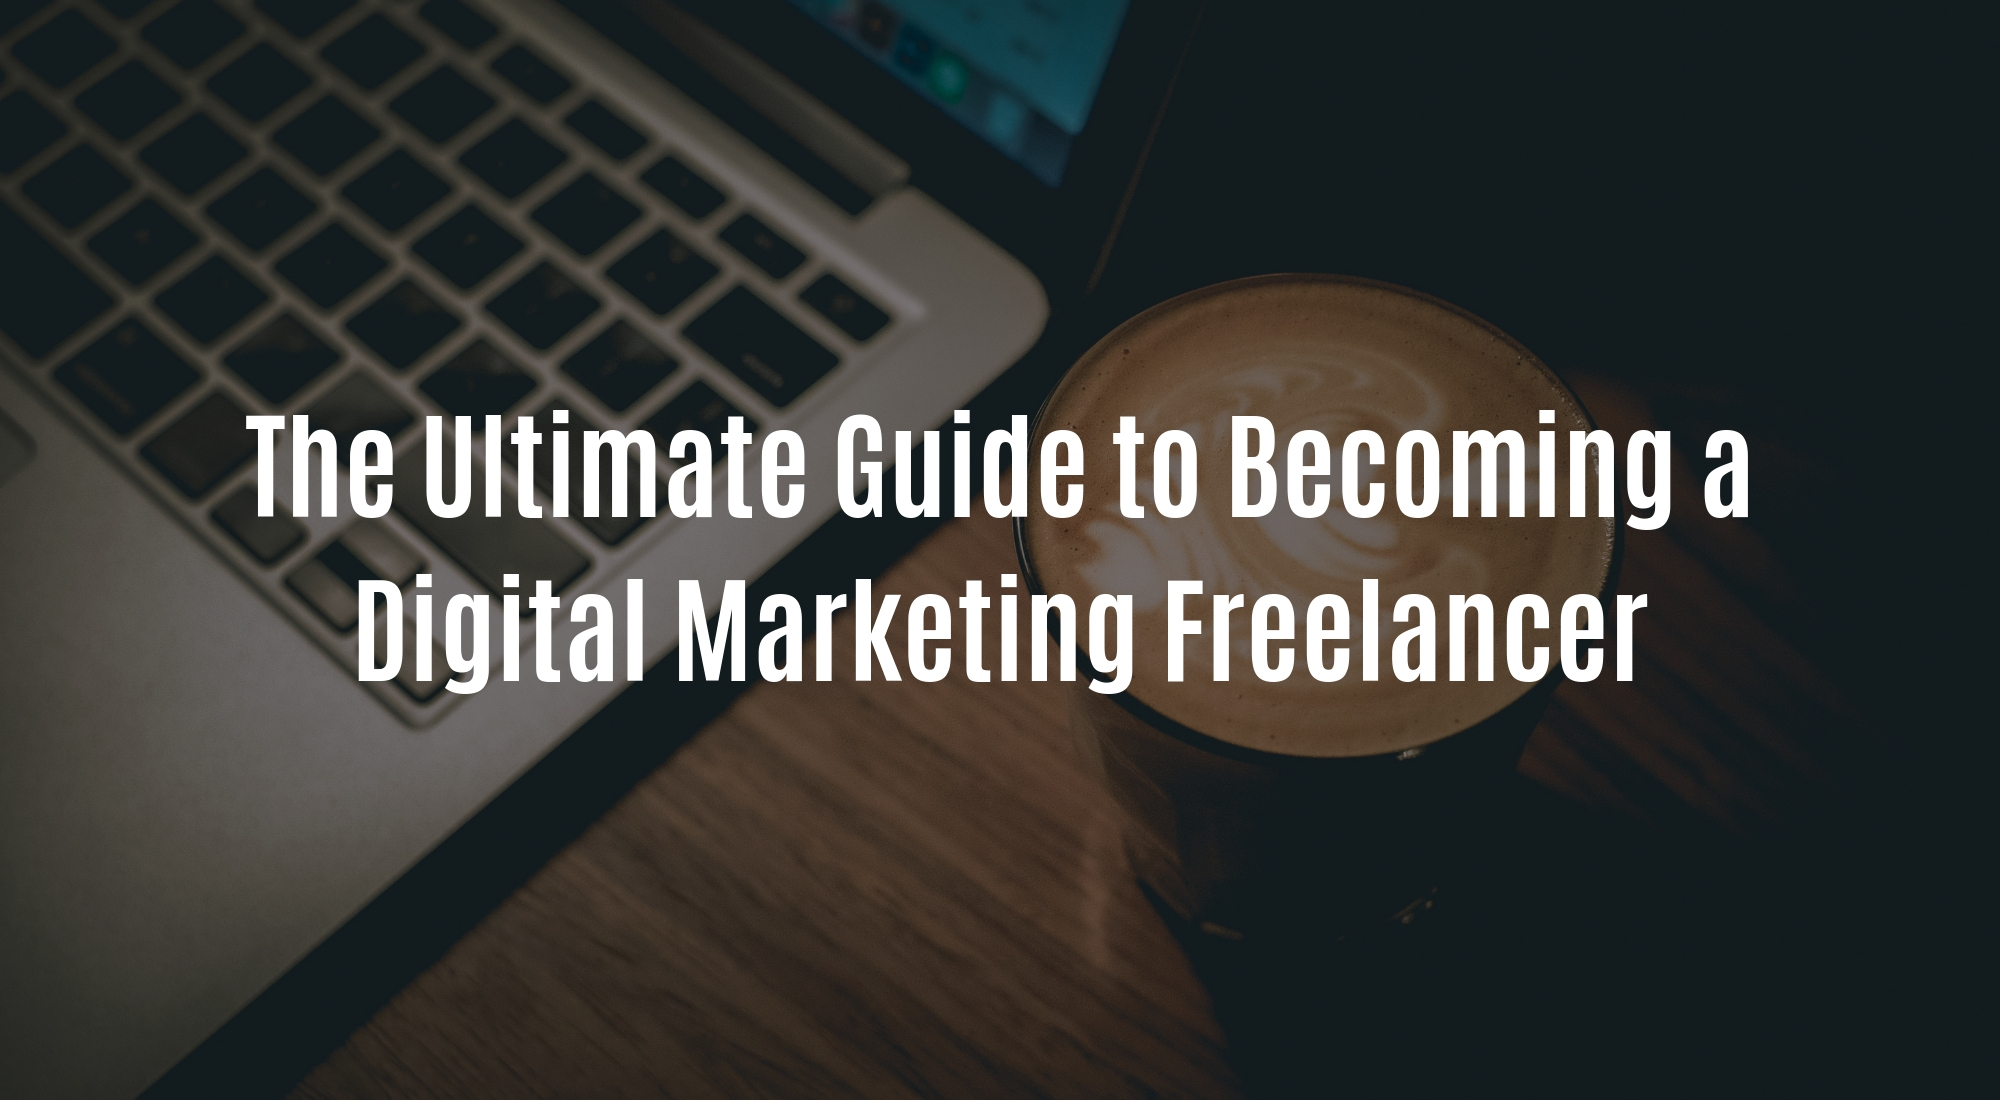 The Ultimate Guide to Becoming a Digital Marketing Freelancer.jpg